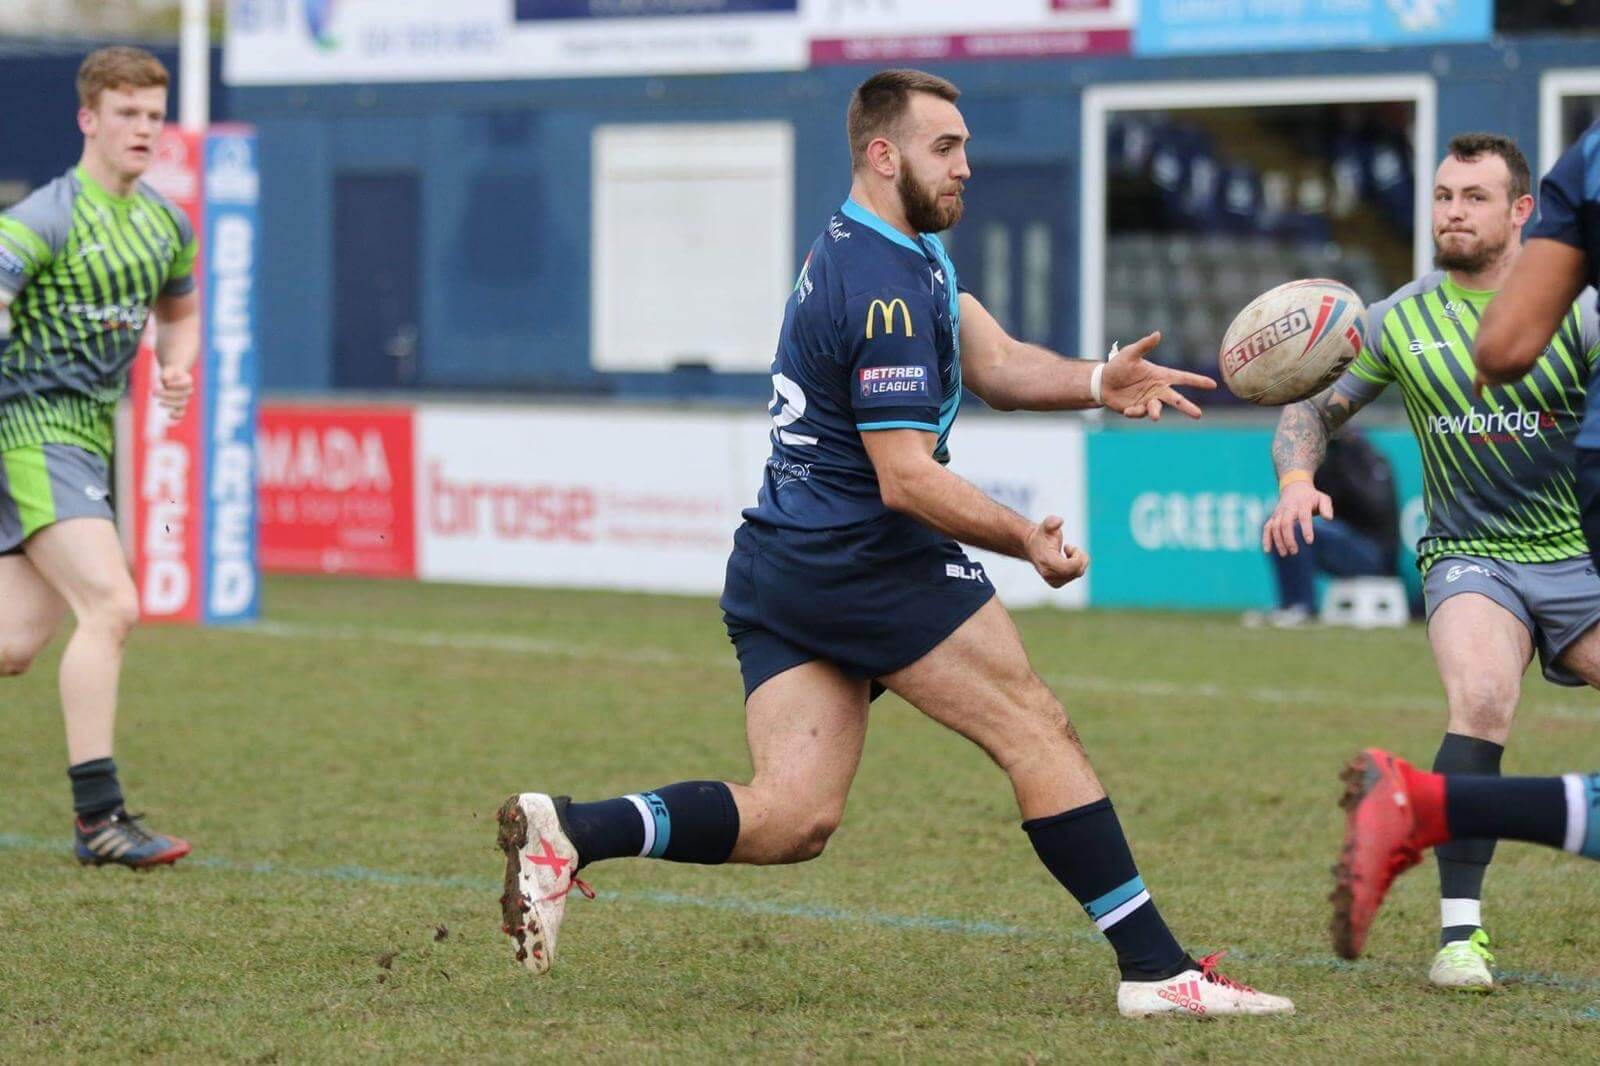 Coventry captain Chris Barratt joins North Wales Crusaders